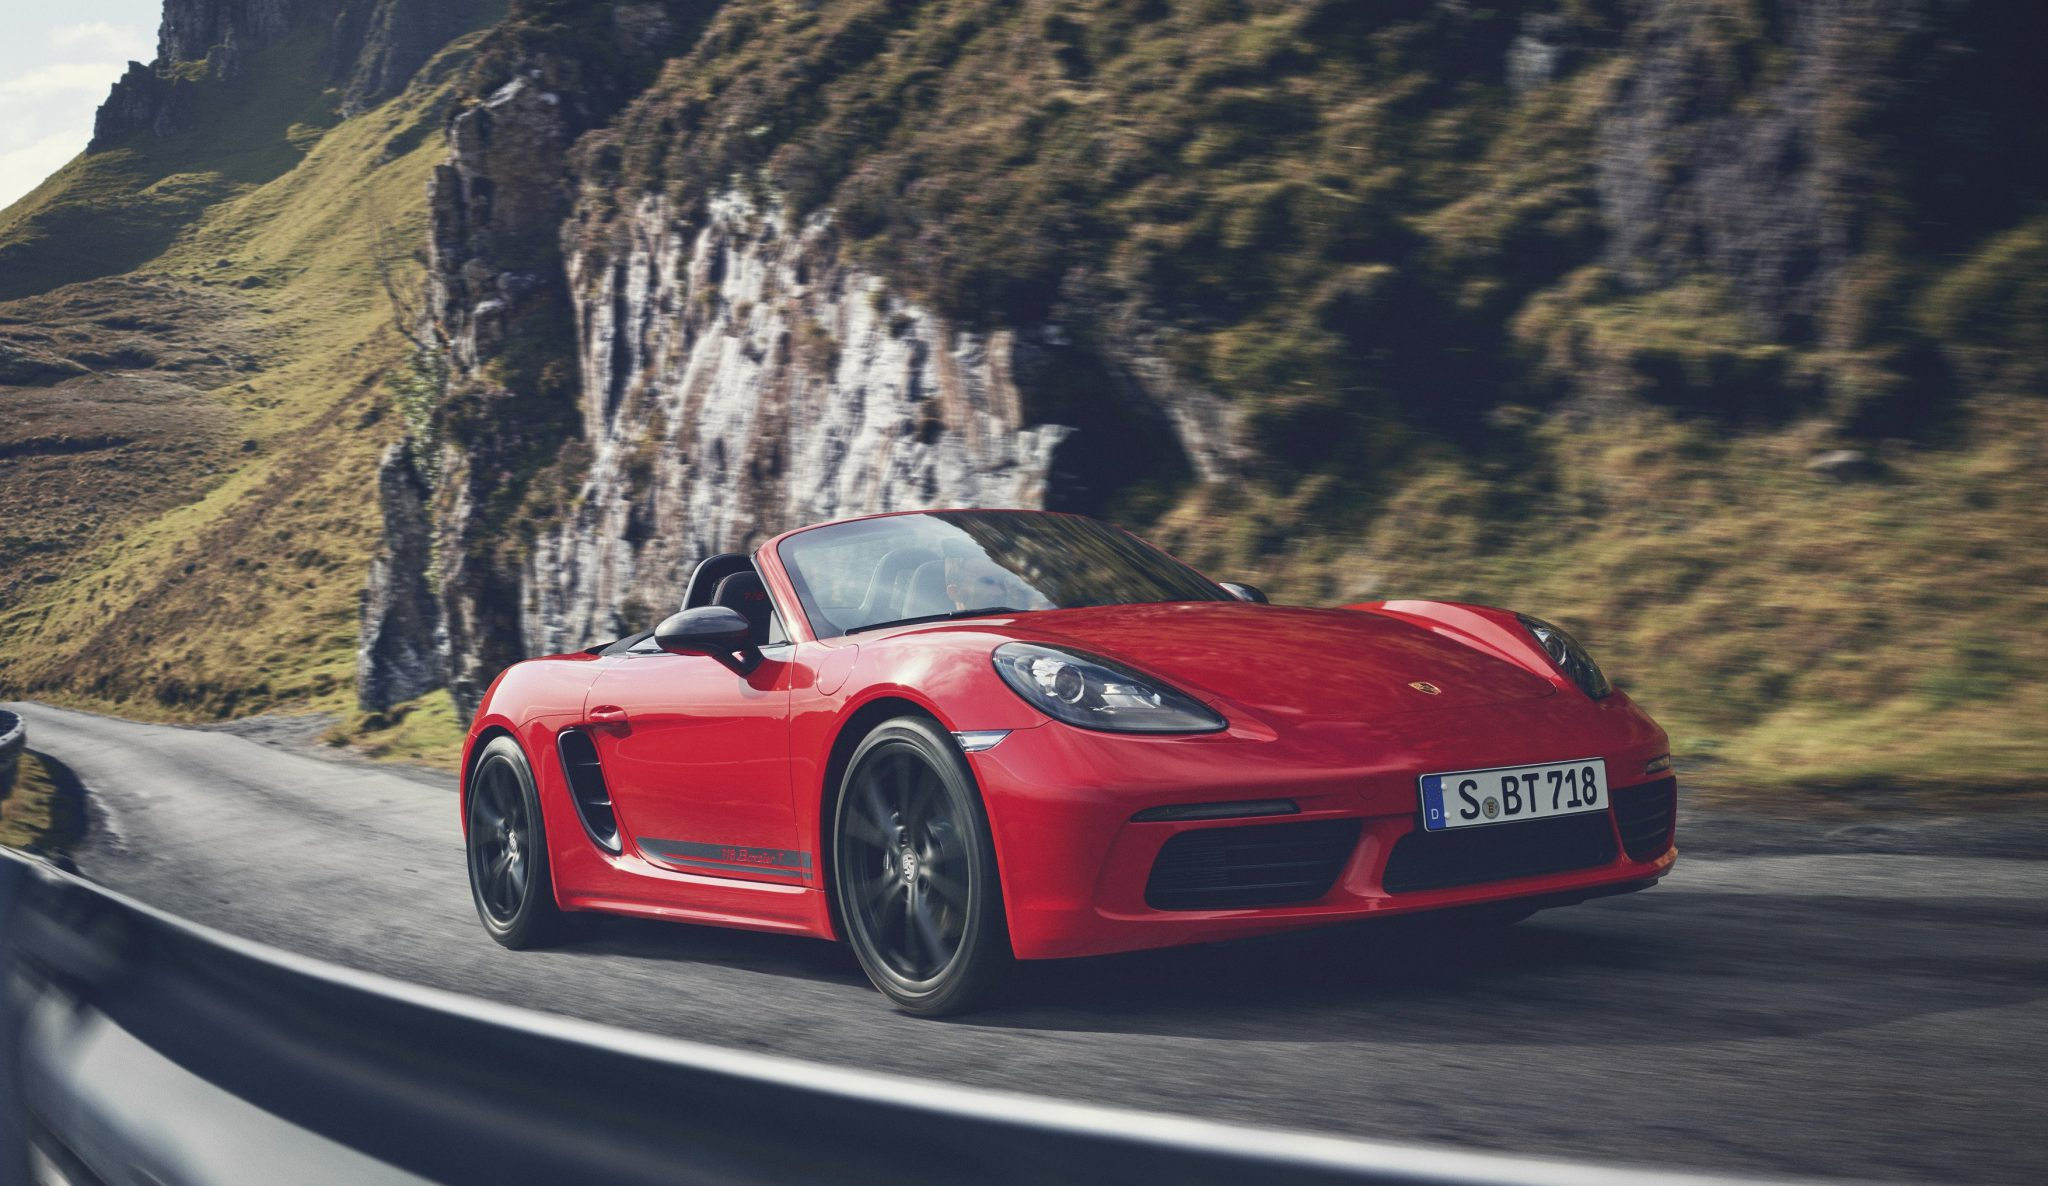 The New Two Seater Sports Car In Boxster And Cayman Ranges Combines Traditional Puristic Design 220 Kw 300 Ps Turbo Four Cylinder Flat Engine With A